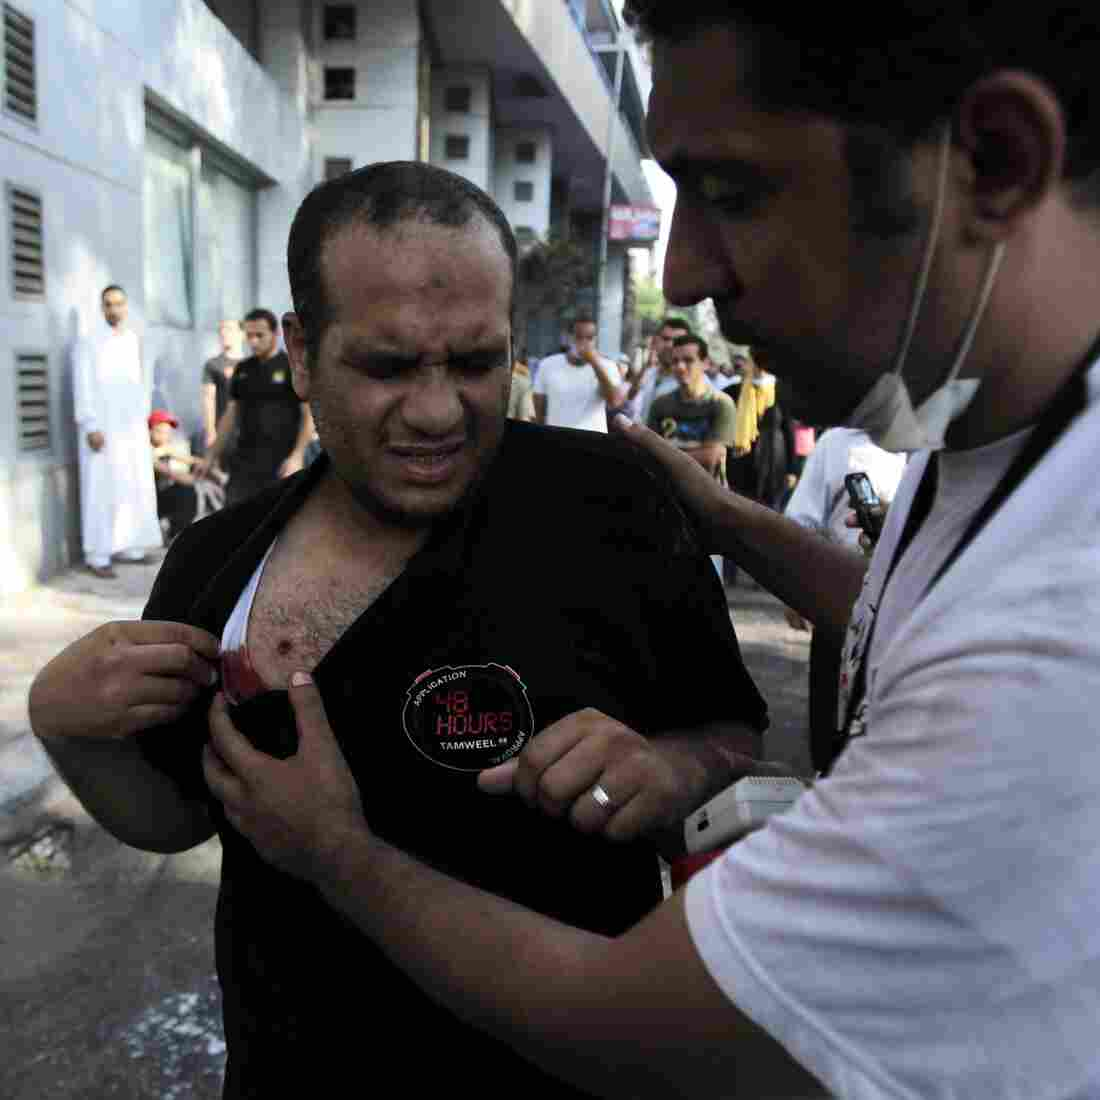 In Egypt: 'Day Of Rage' Adds To Body Count